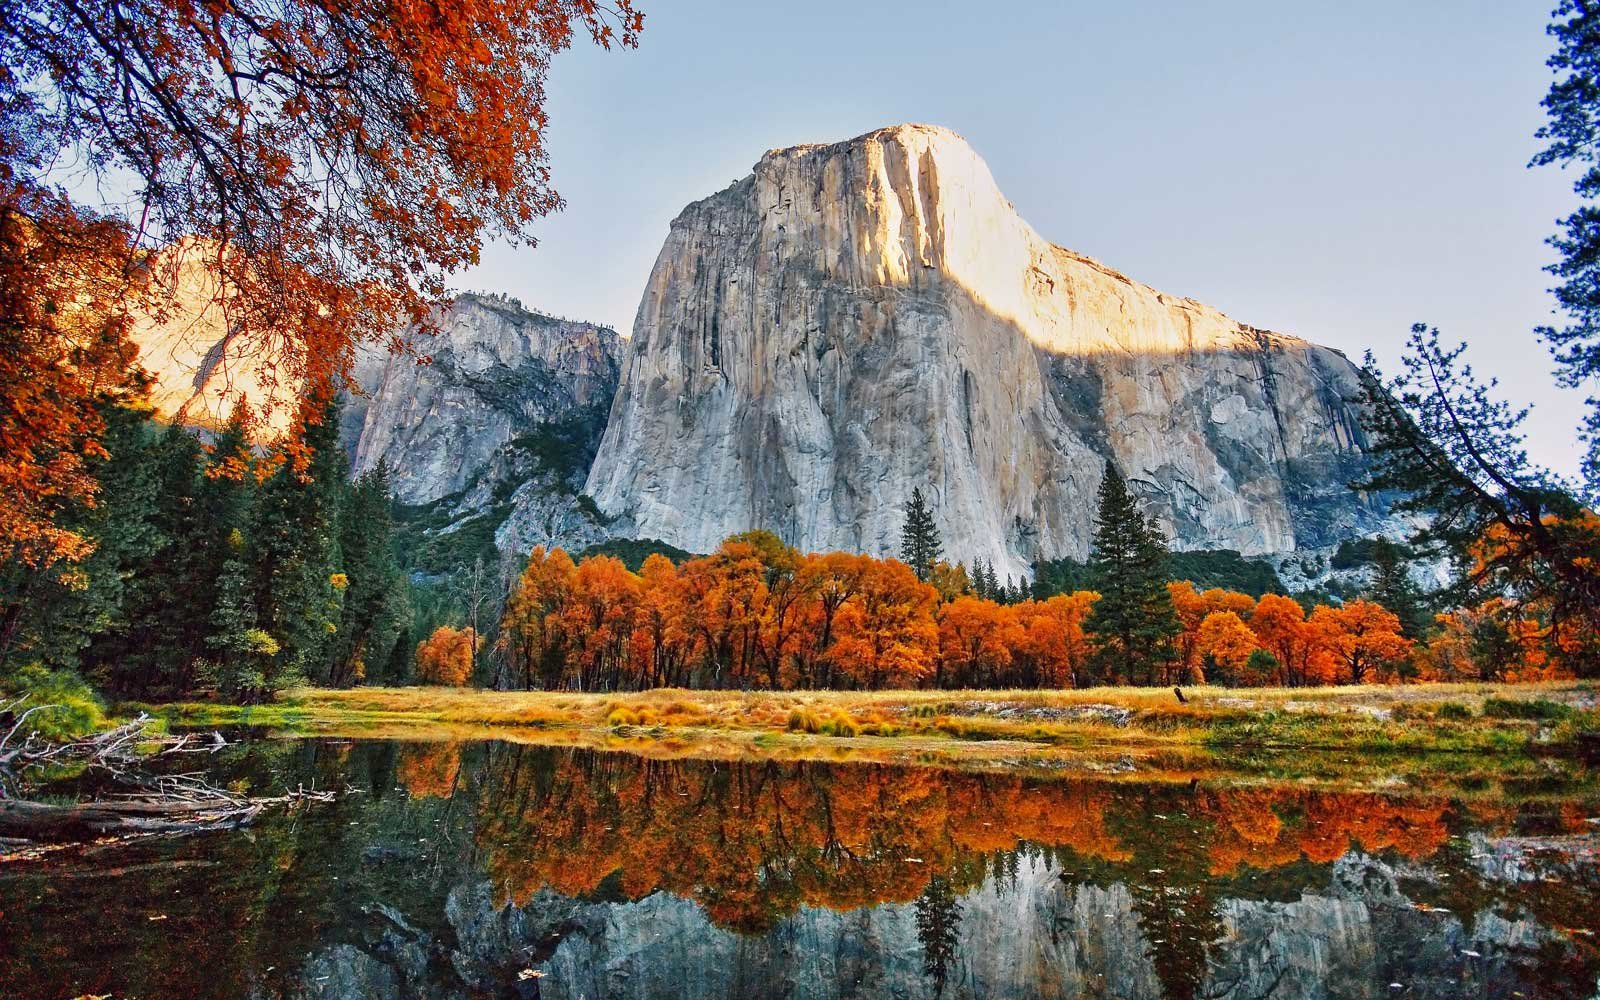 Yosemite National Park: California